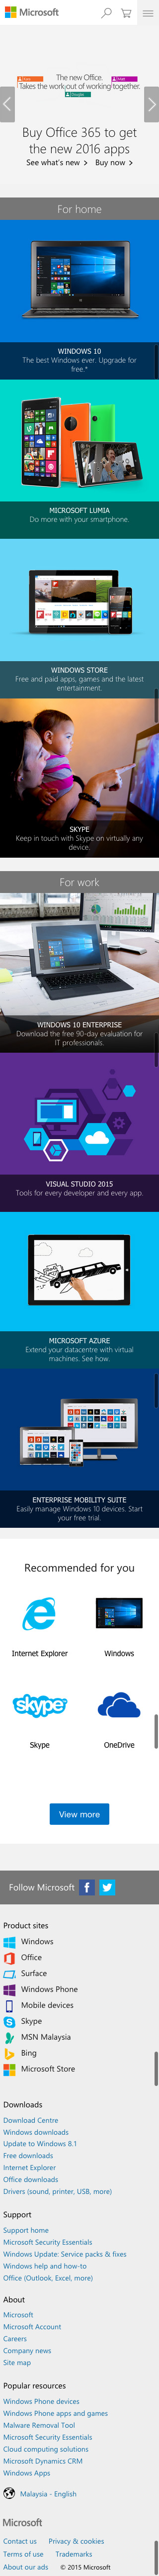 microsoft mobile website